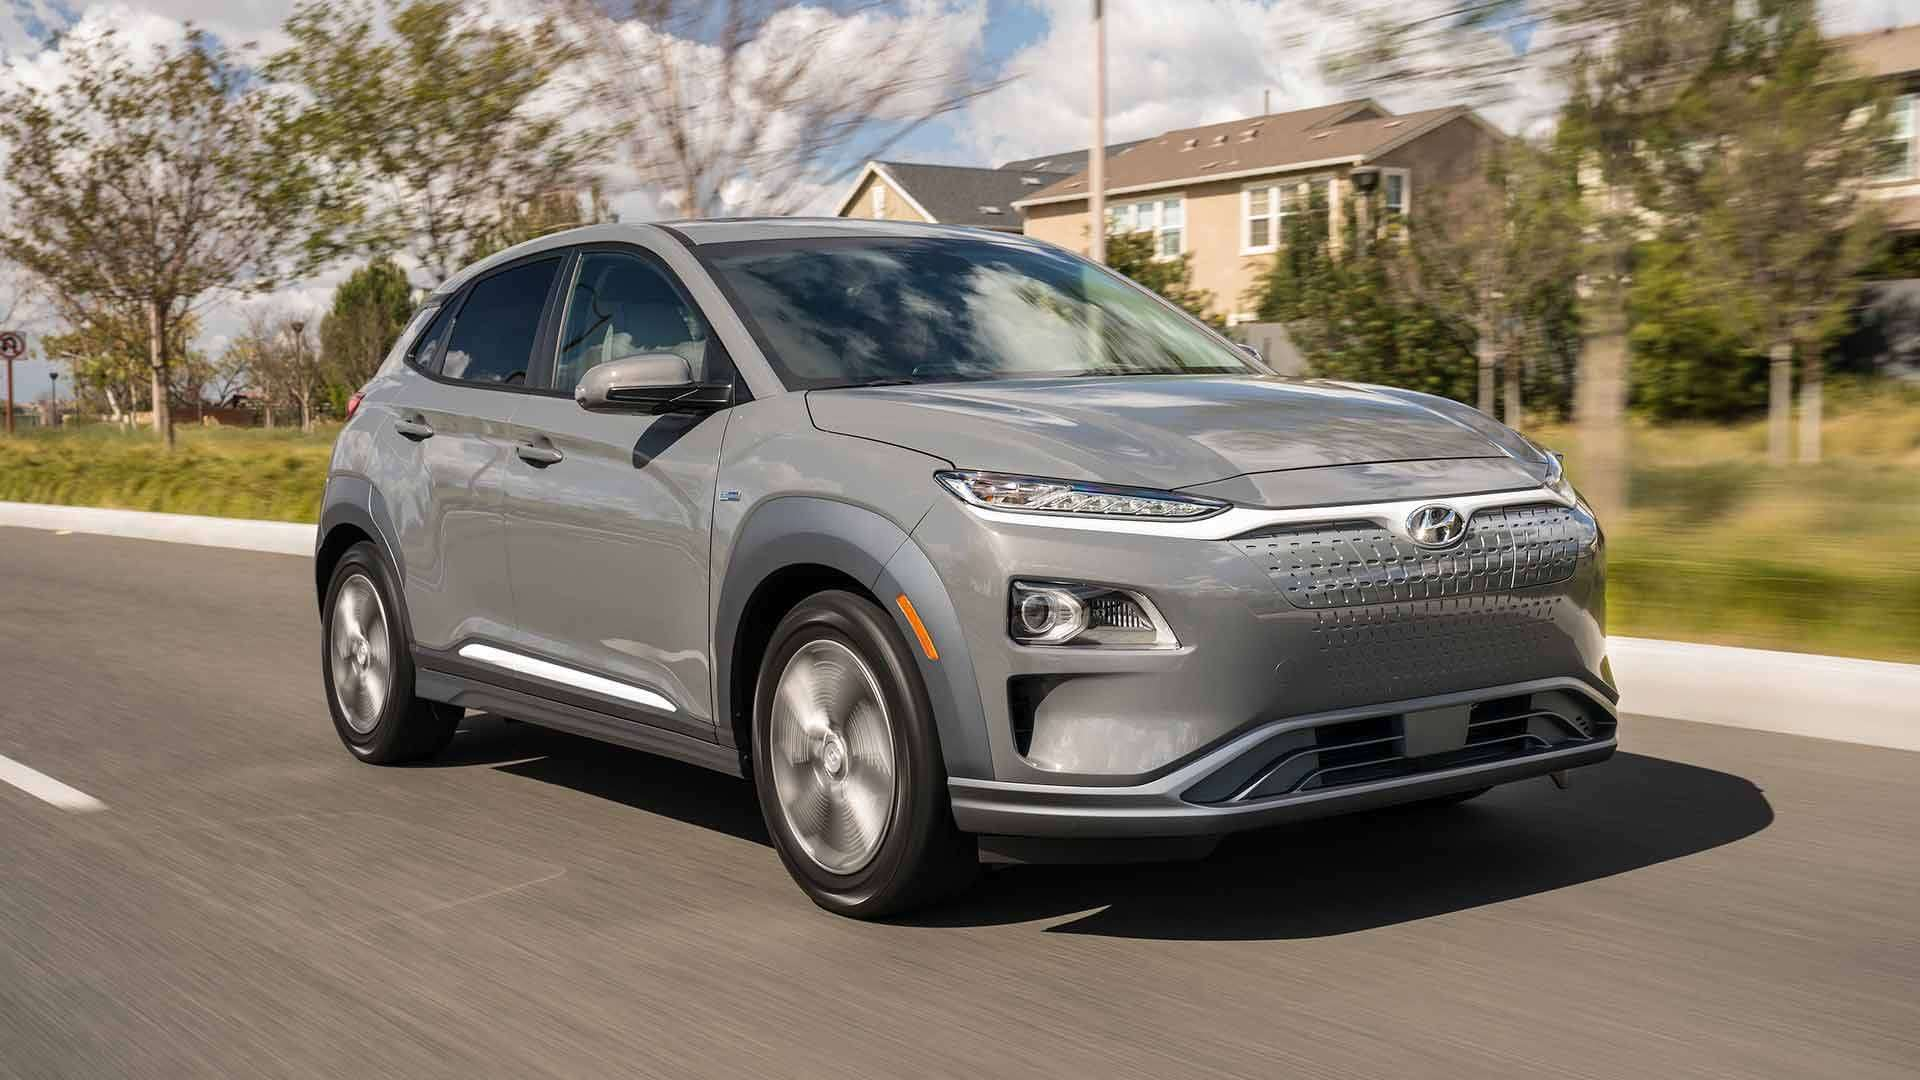 Hyundai Kona Electric - Best Electric Cars